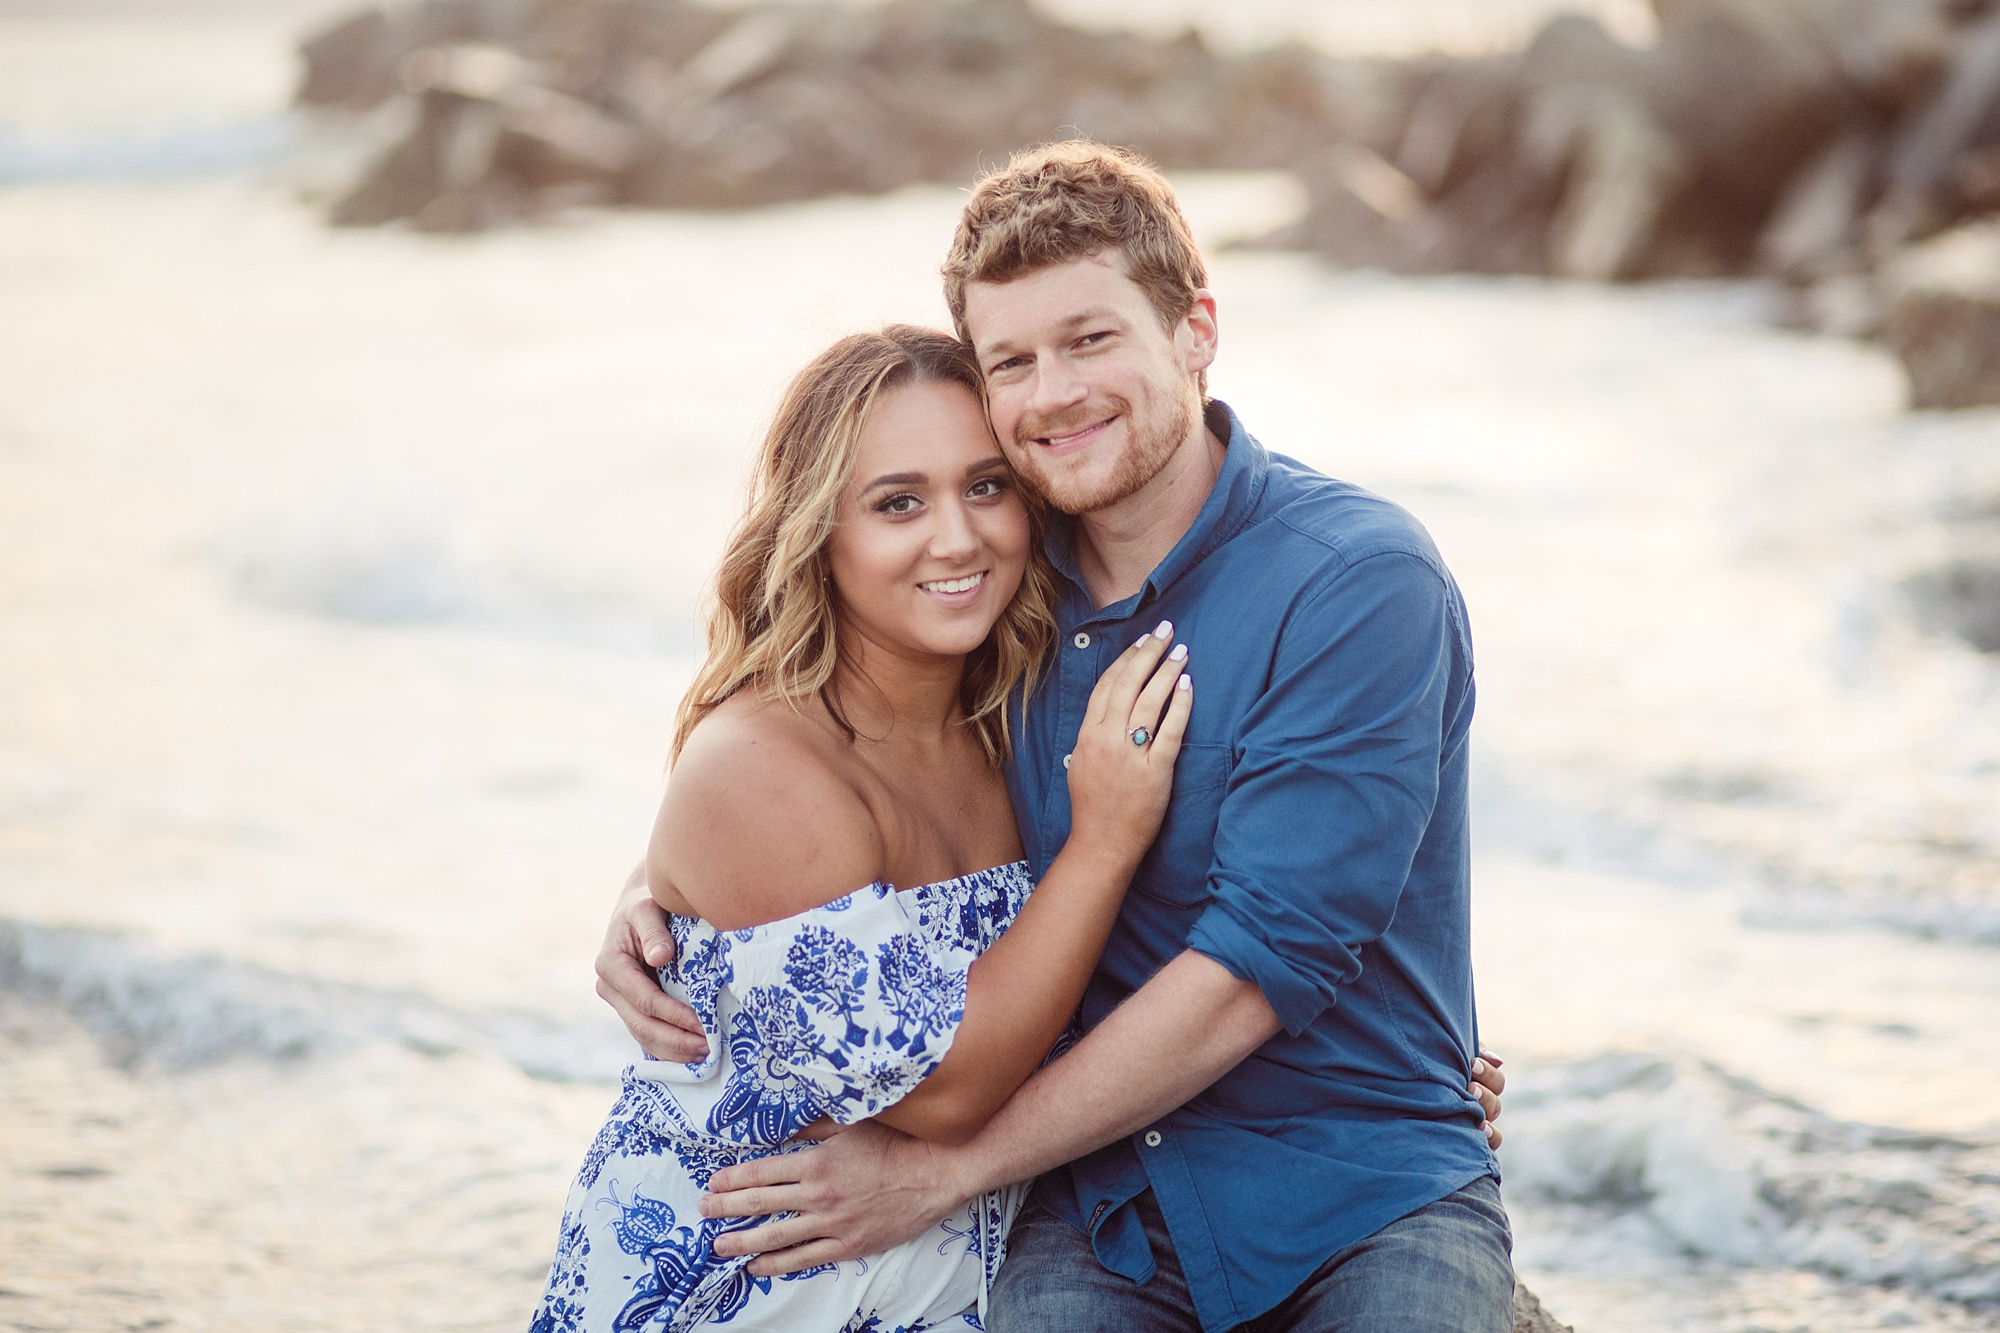 San Diego Engagement Photographer | San Diego Photographer